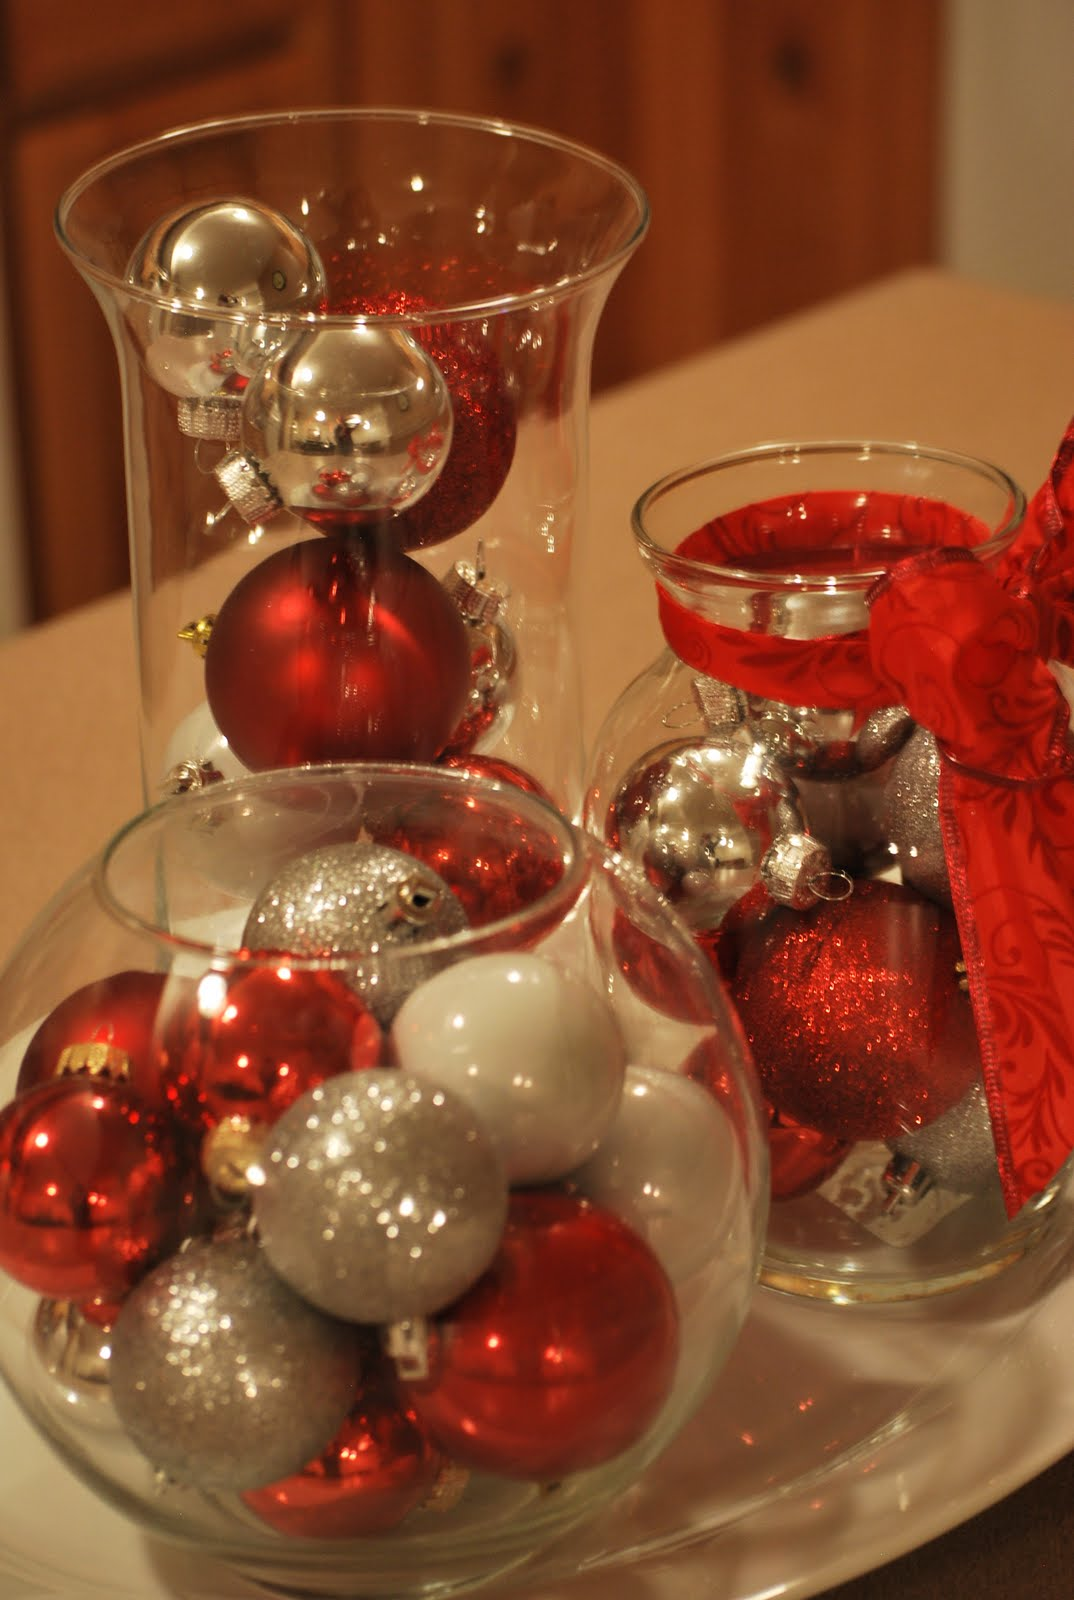 Frugal Wife = Wealthy Life: Decorating For The Holidays On A Budget